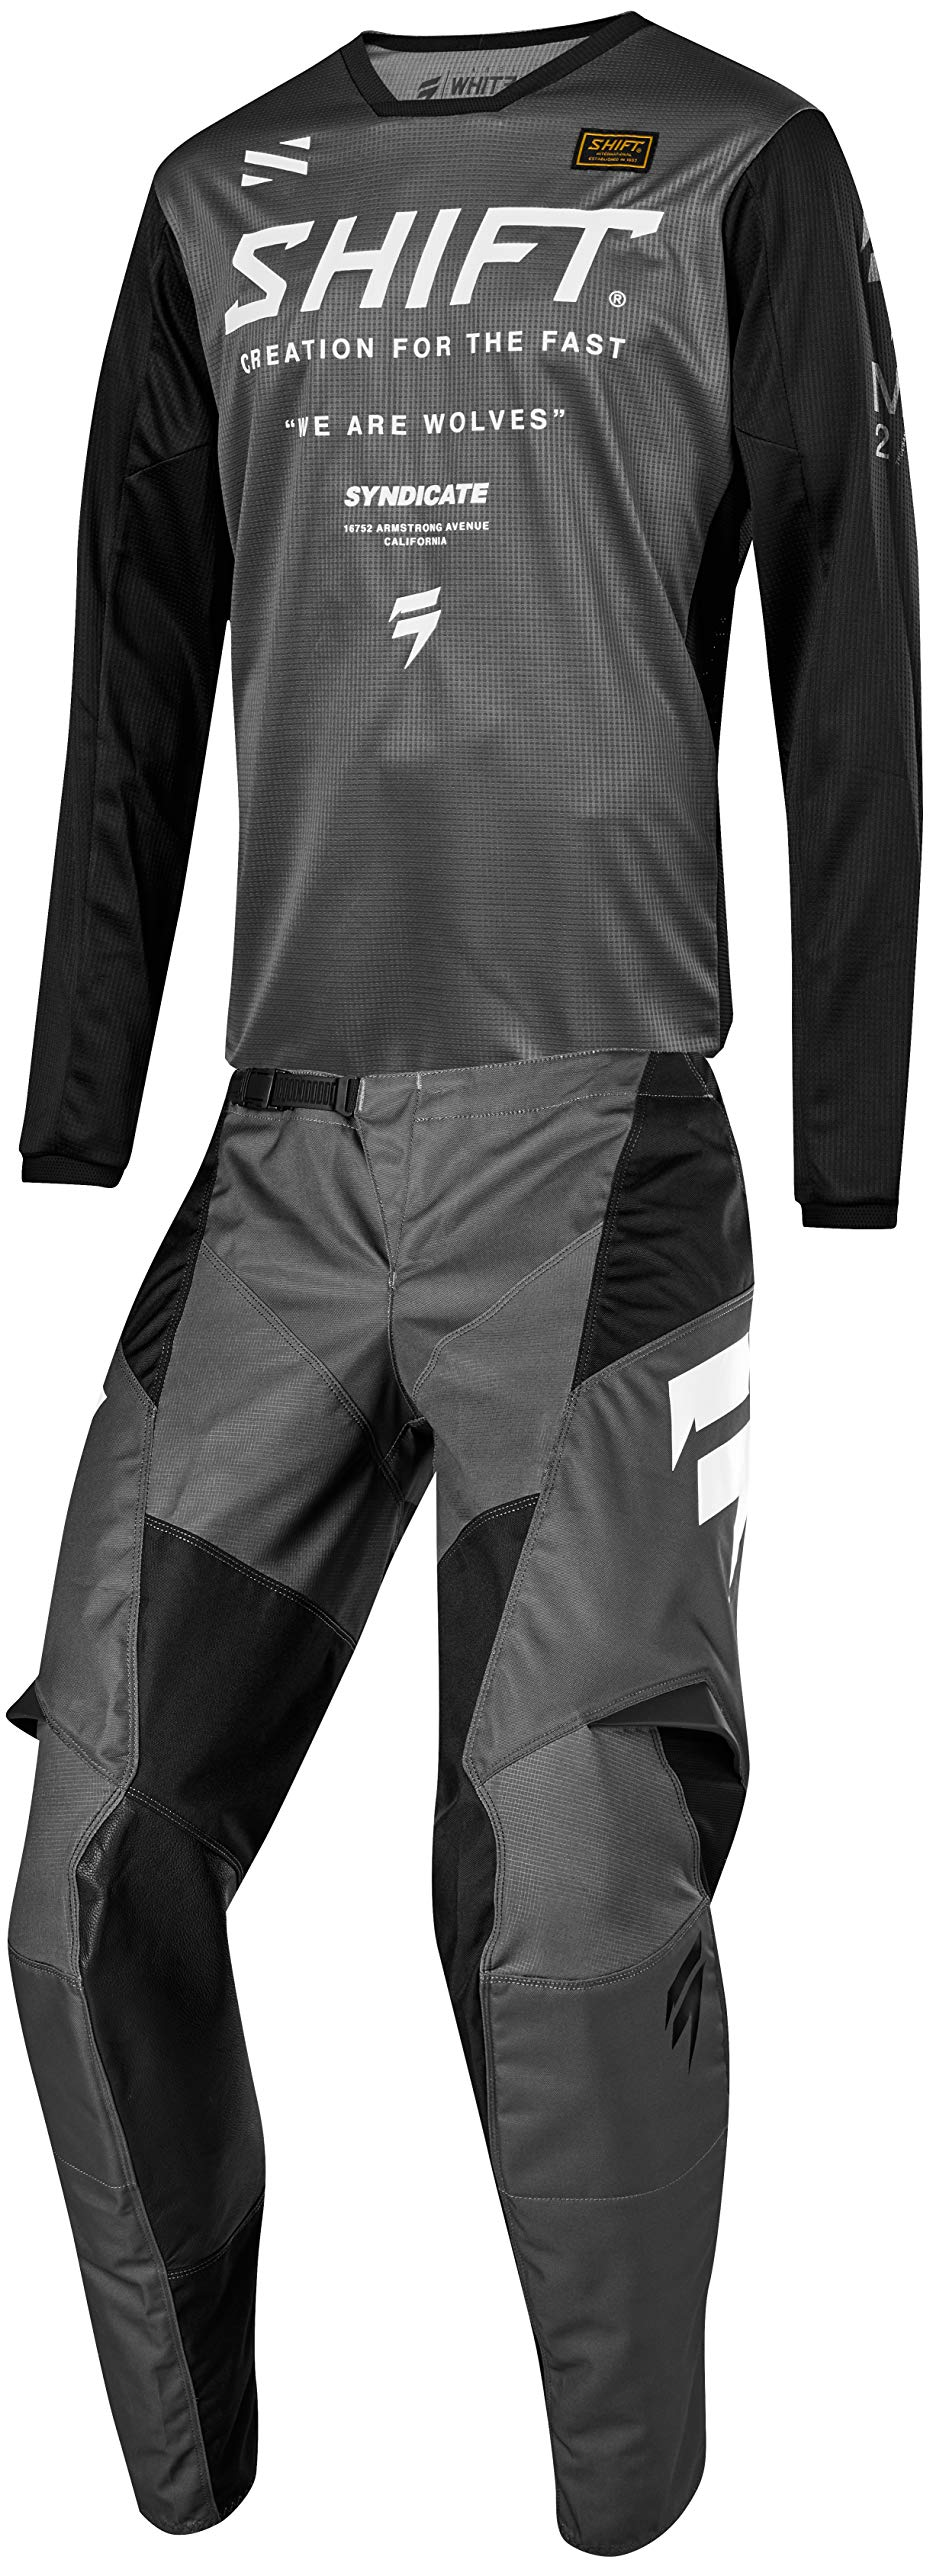 Shift MX 2019 White Label Muse Motocross Off-Road Dirt Bike Riding Gear Combo (Mens Smoke Grey & Black Jersey Medium/32W Pant)